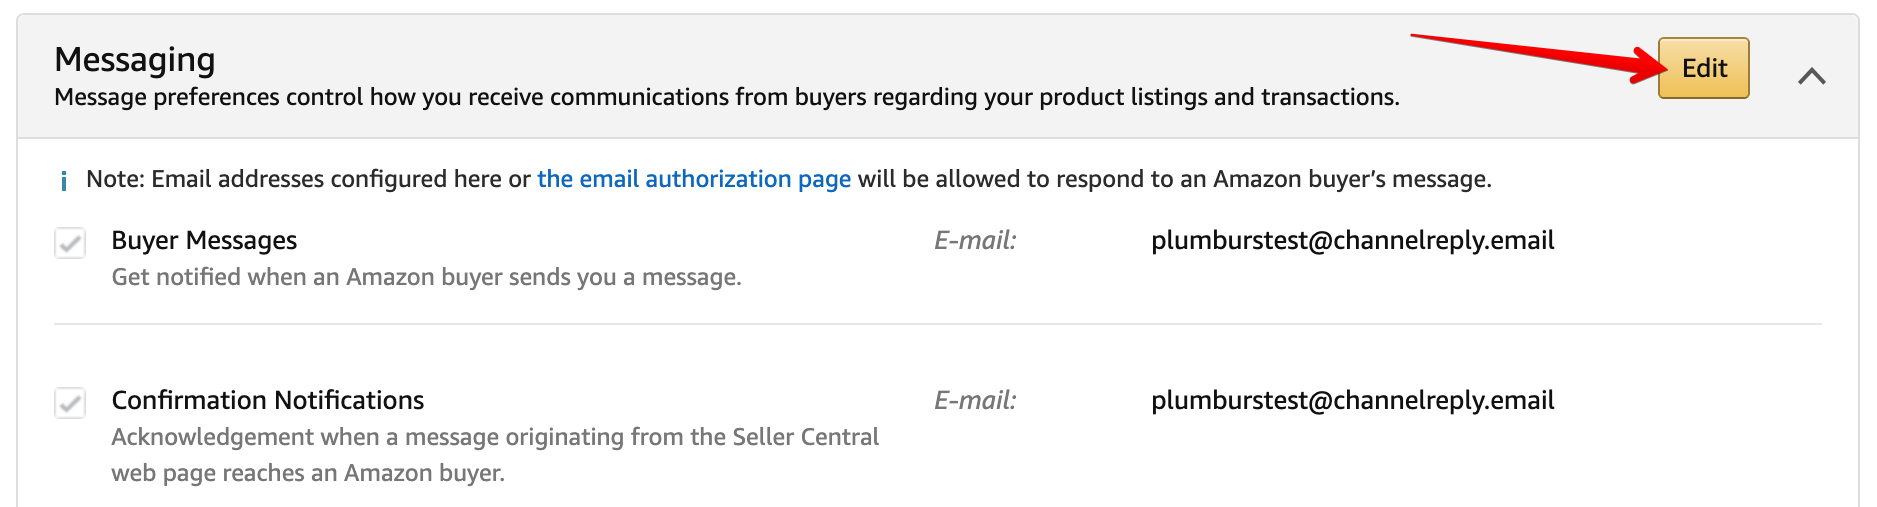 Sending Amazon Buyer Messages through ChannelReply